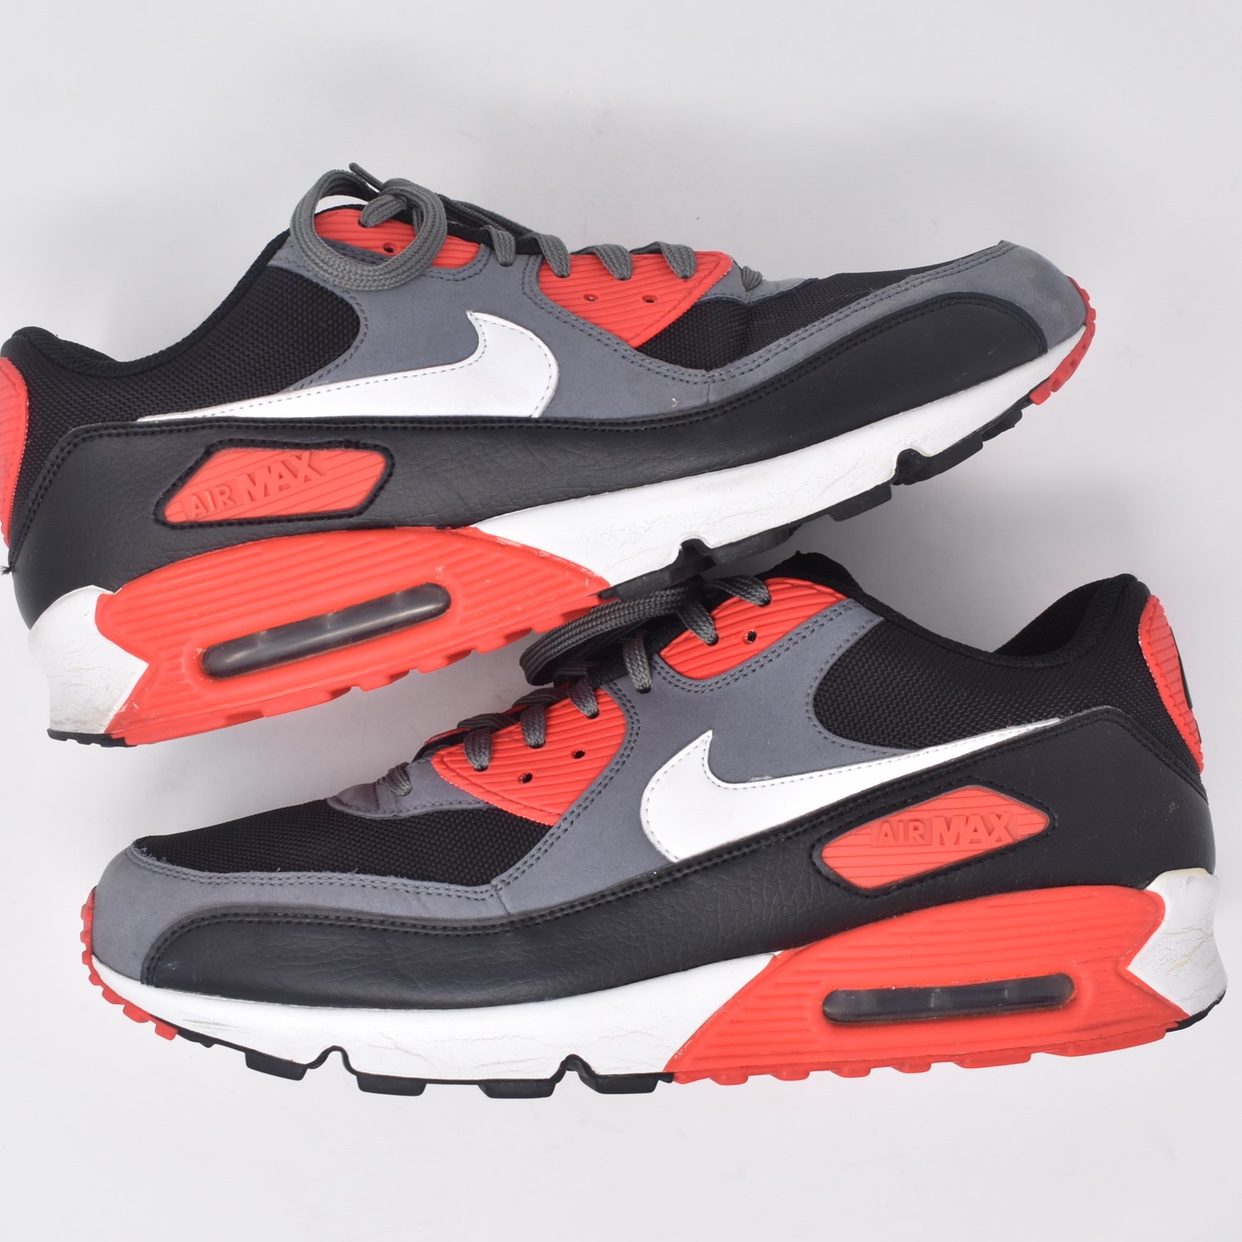 2011 Nike Air Max 90 Reverse Infrared. Size 13 mens. Depop